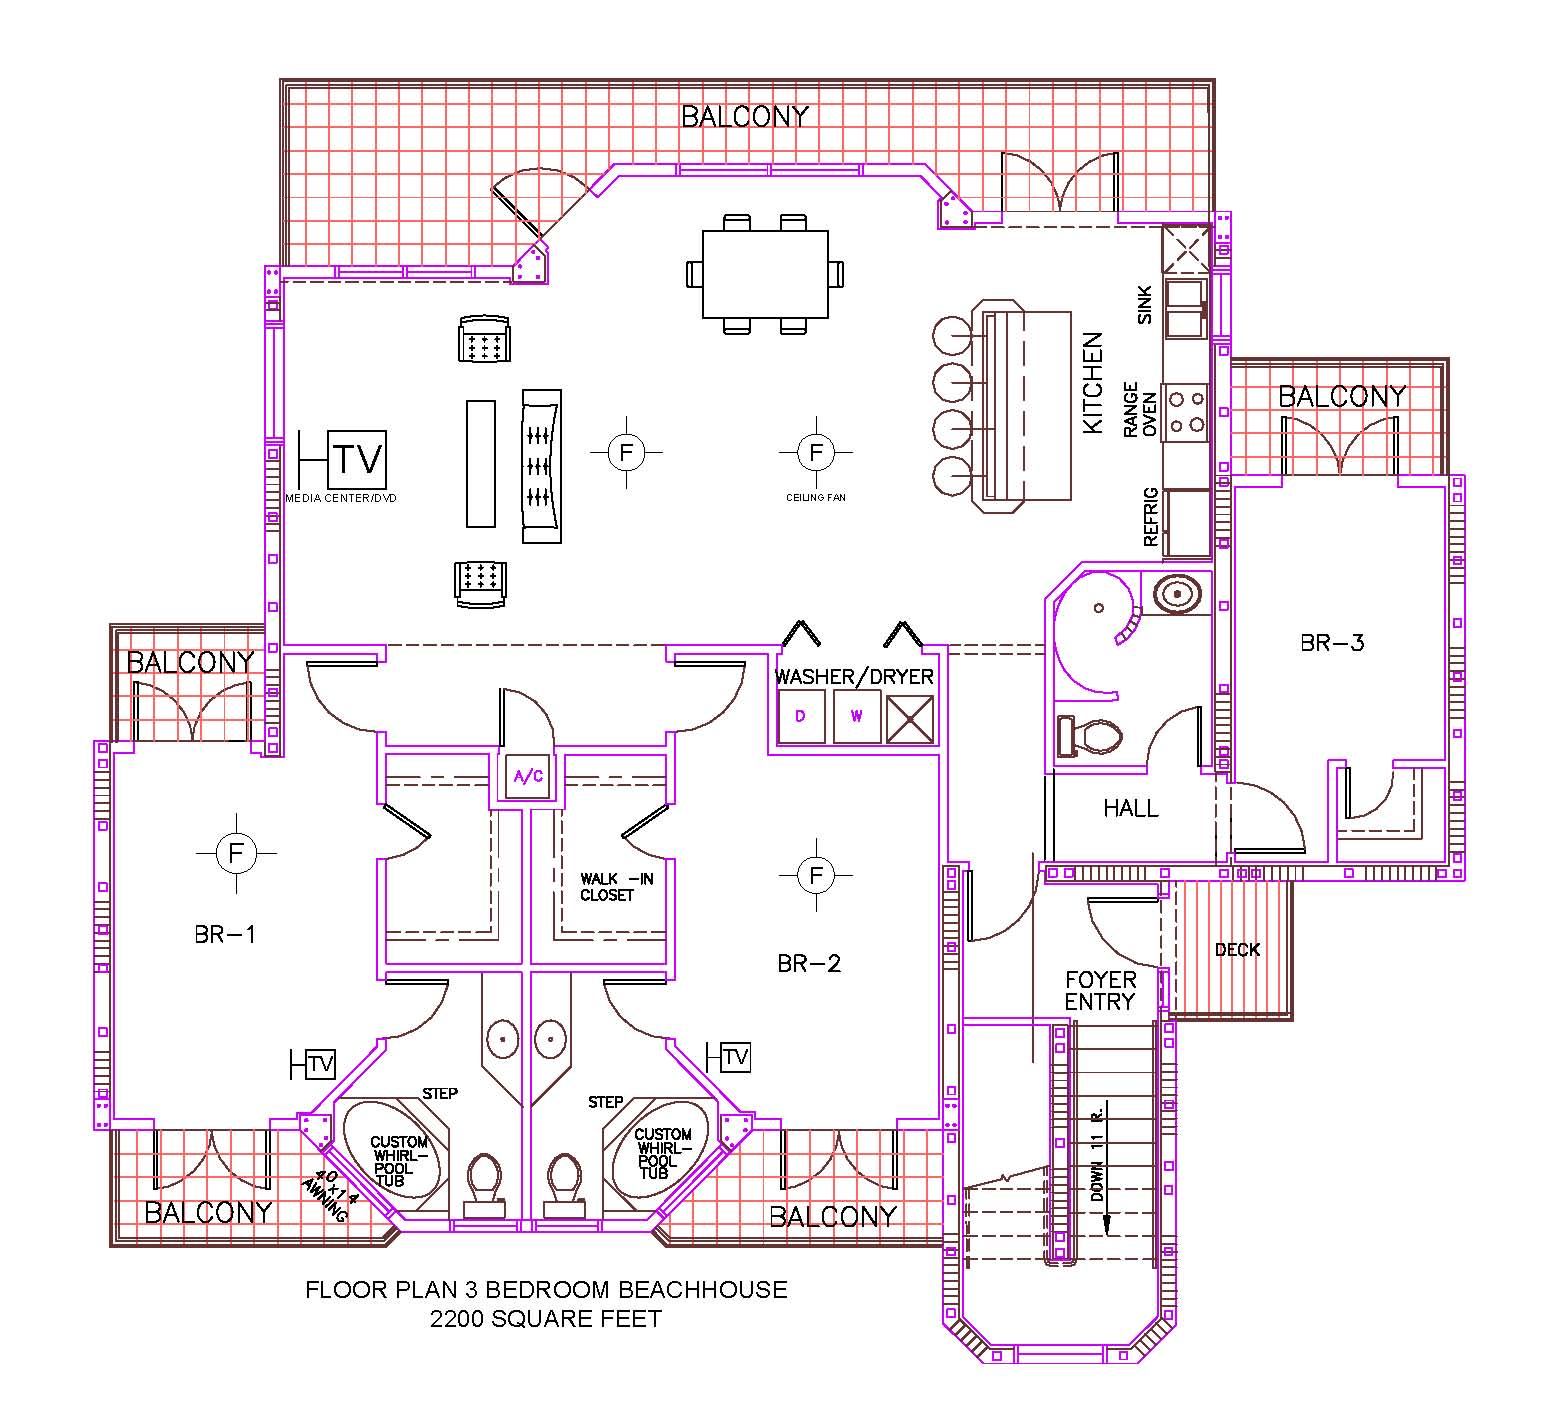 Floor plan for pelican point st augustine fl for 3 bedroom beach house plans